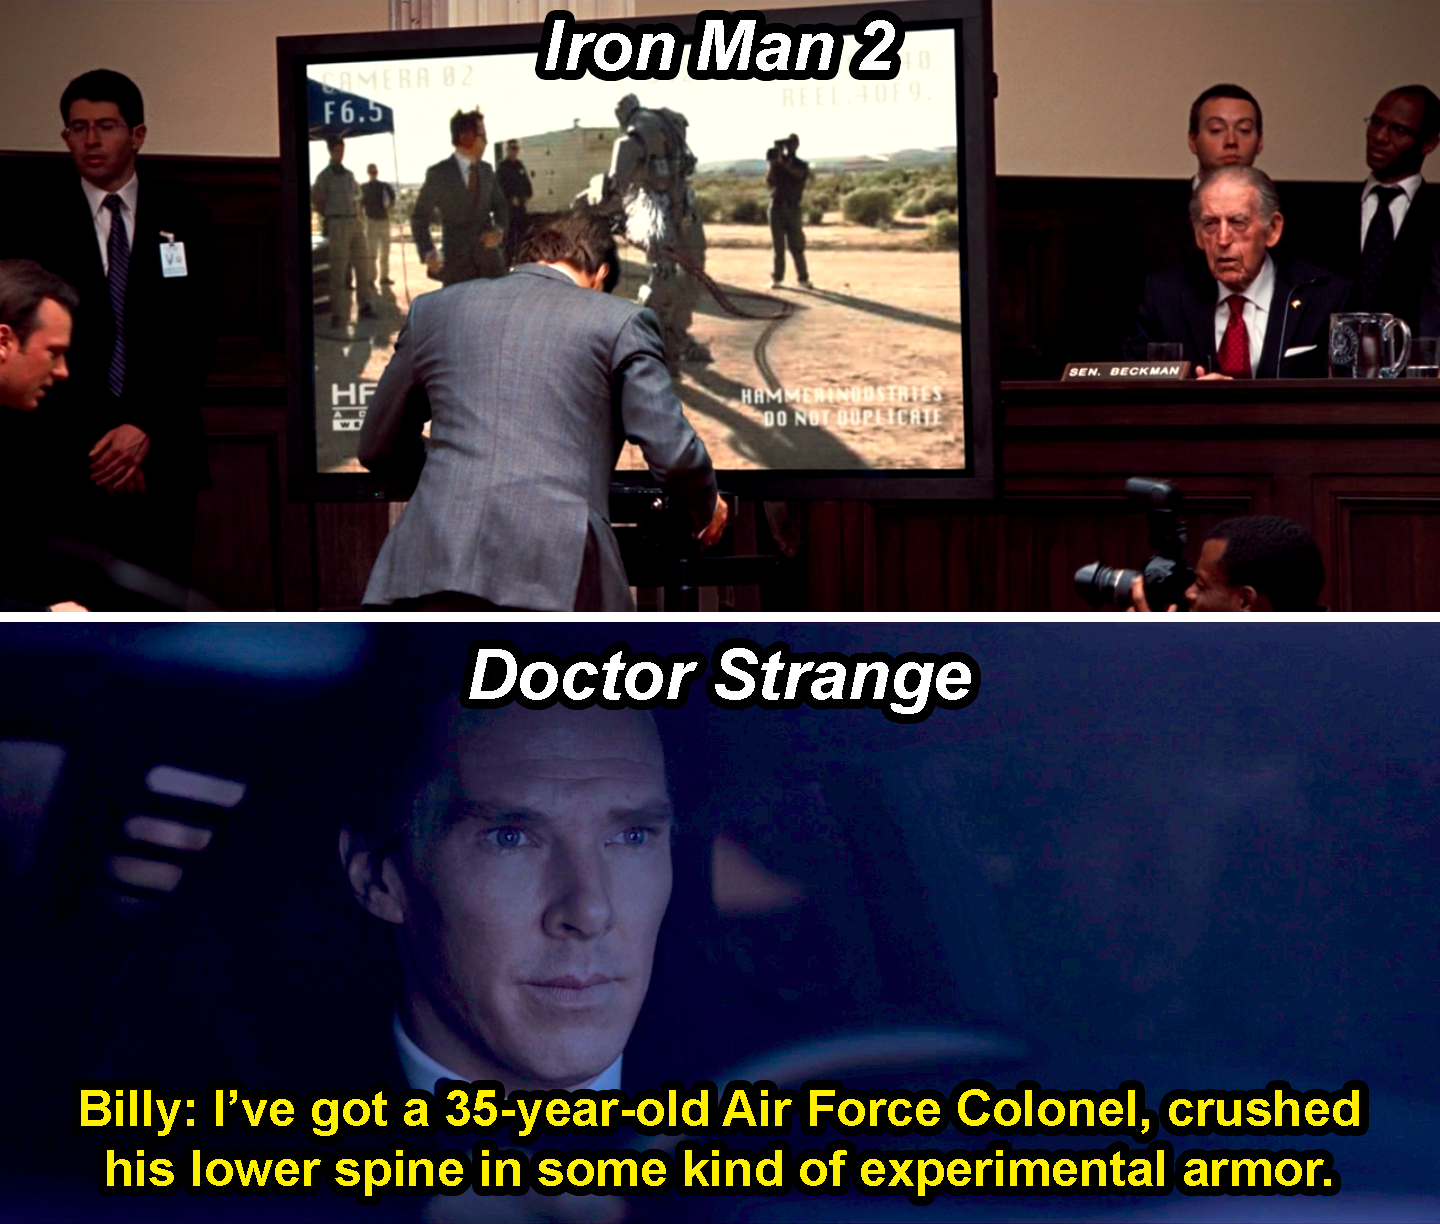 "A knock-off Iron Man twisted 180 degrees at the waist in Iron Man 2 and someone saying, ""I've got a 35-year-old Air Force Colonel, crushed his lower spine in some kind of experimental armor,"" in Doctor Strange"